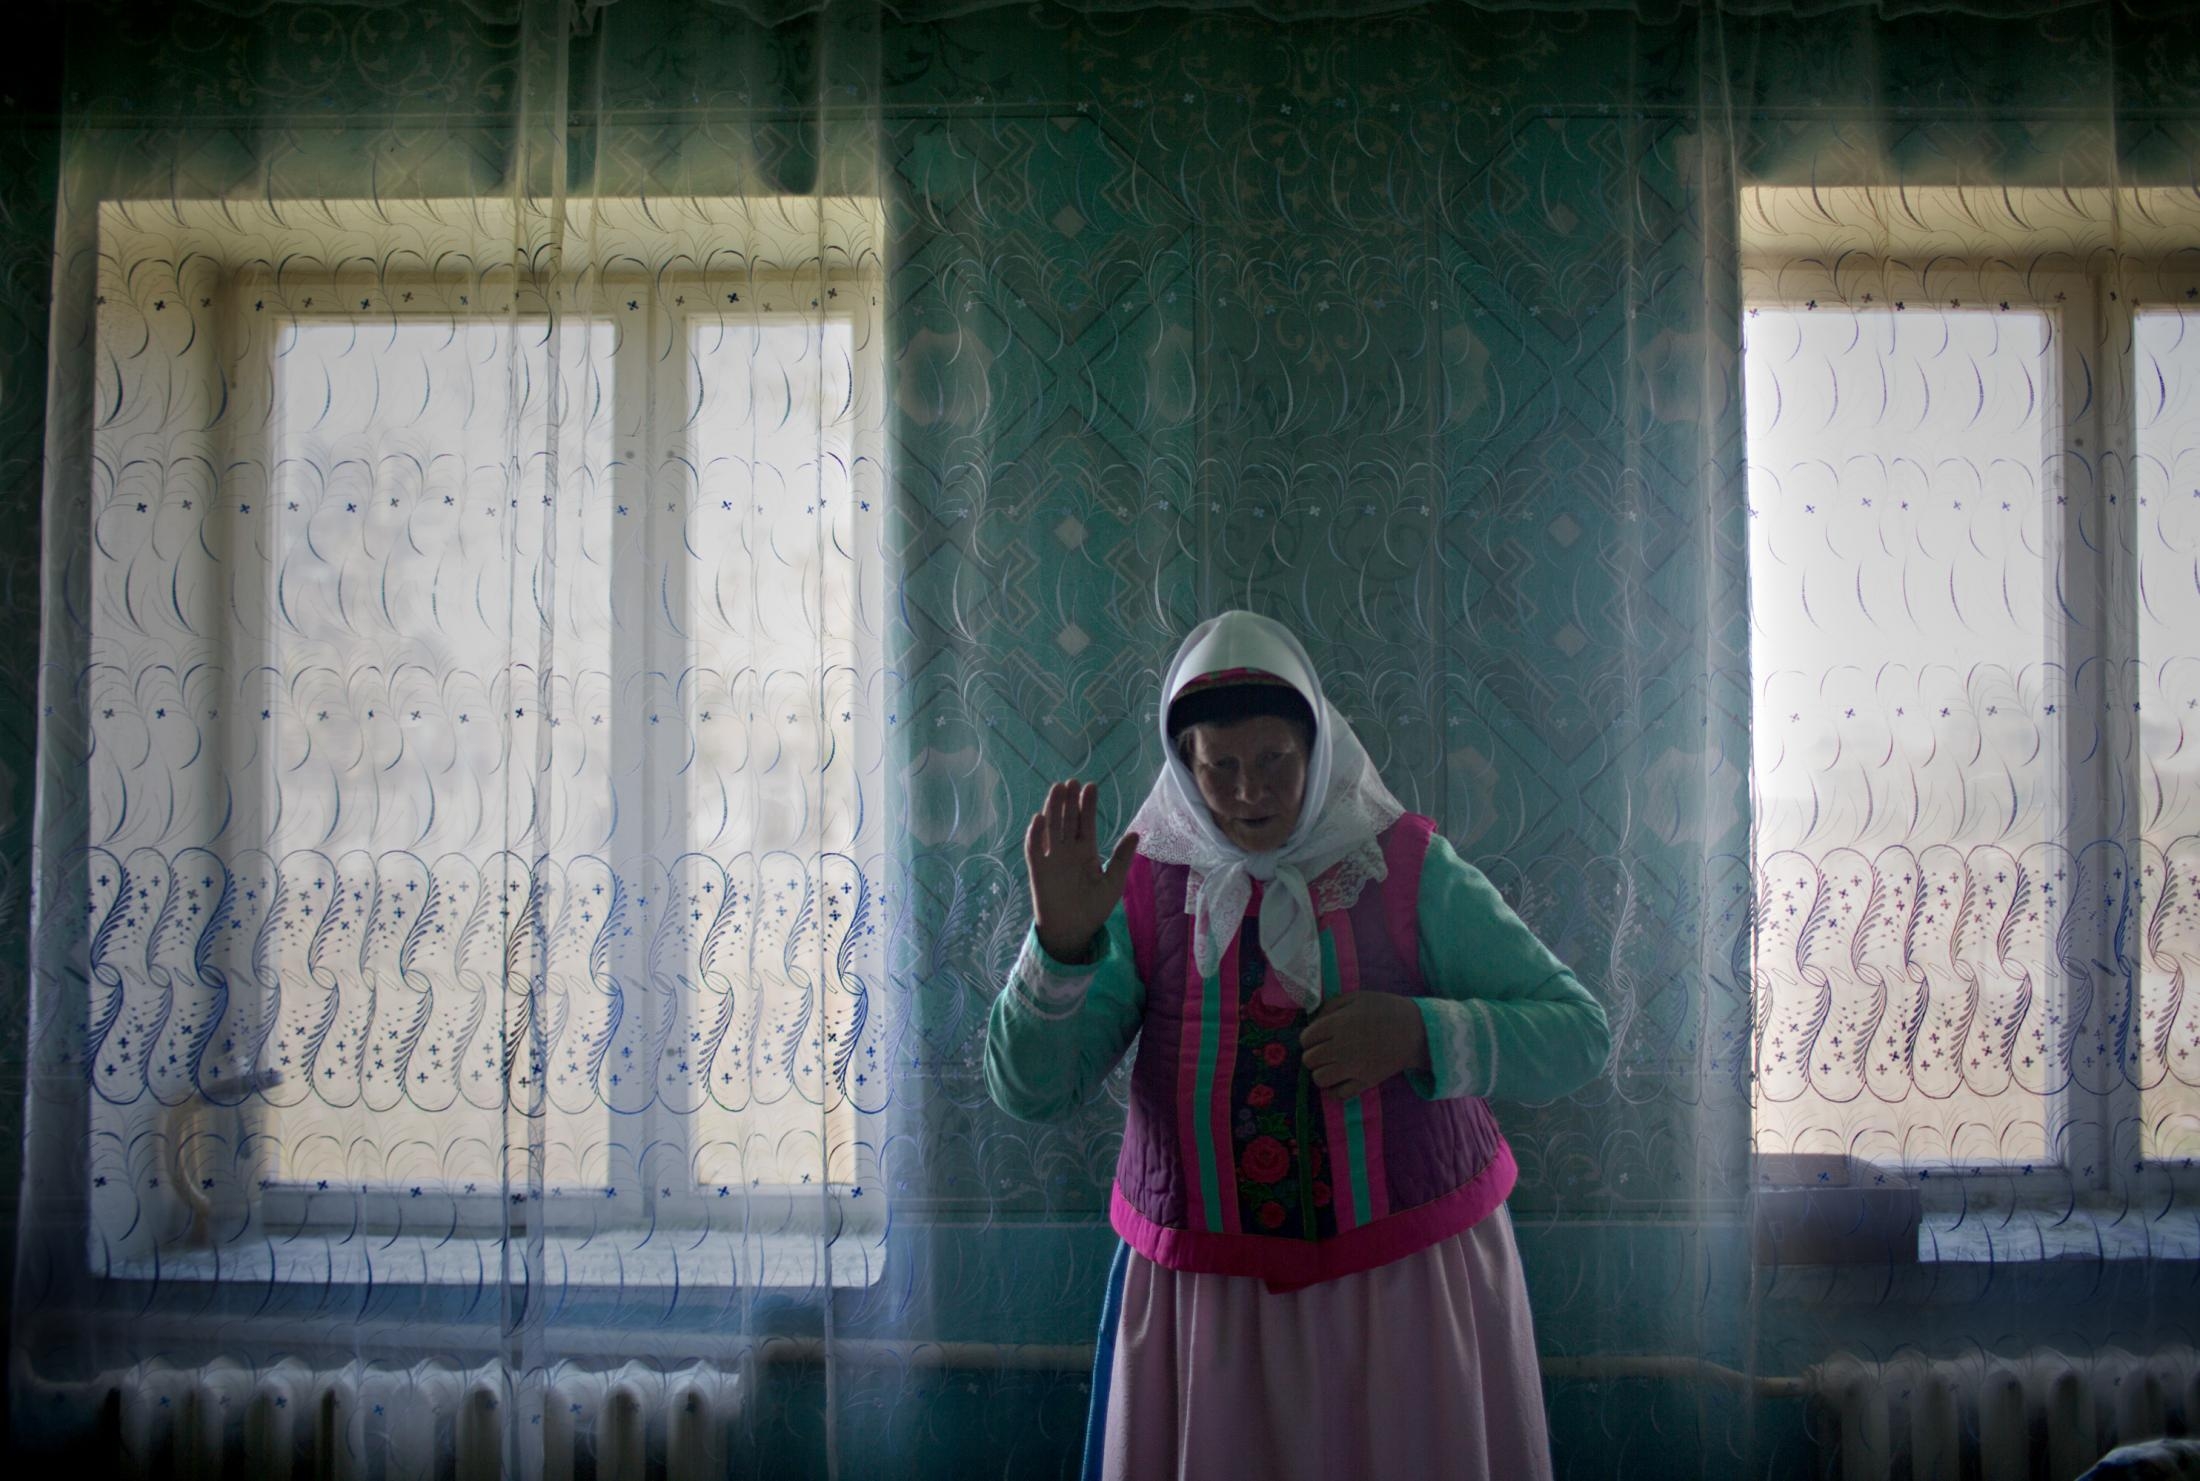 A Doukhobor woman shows off her traditional clothing. The Doukhobors are peaceful and their homes are painted with joyful shades of green, blue and white.